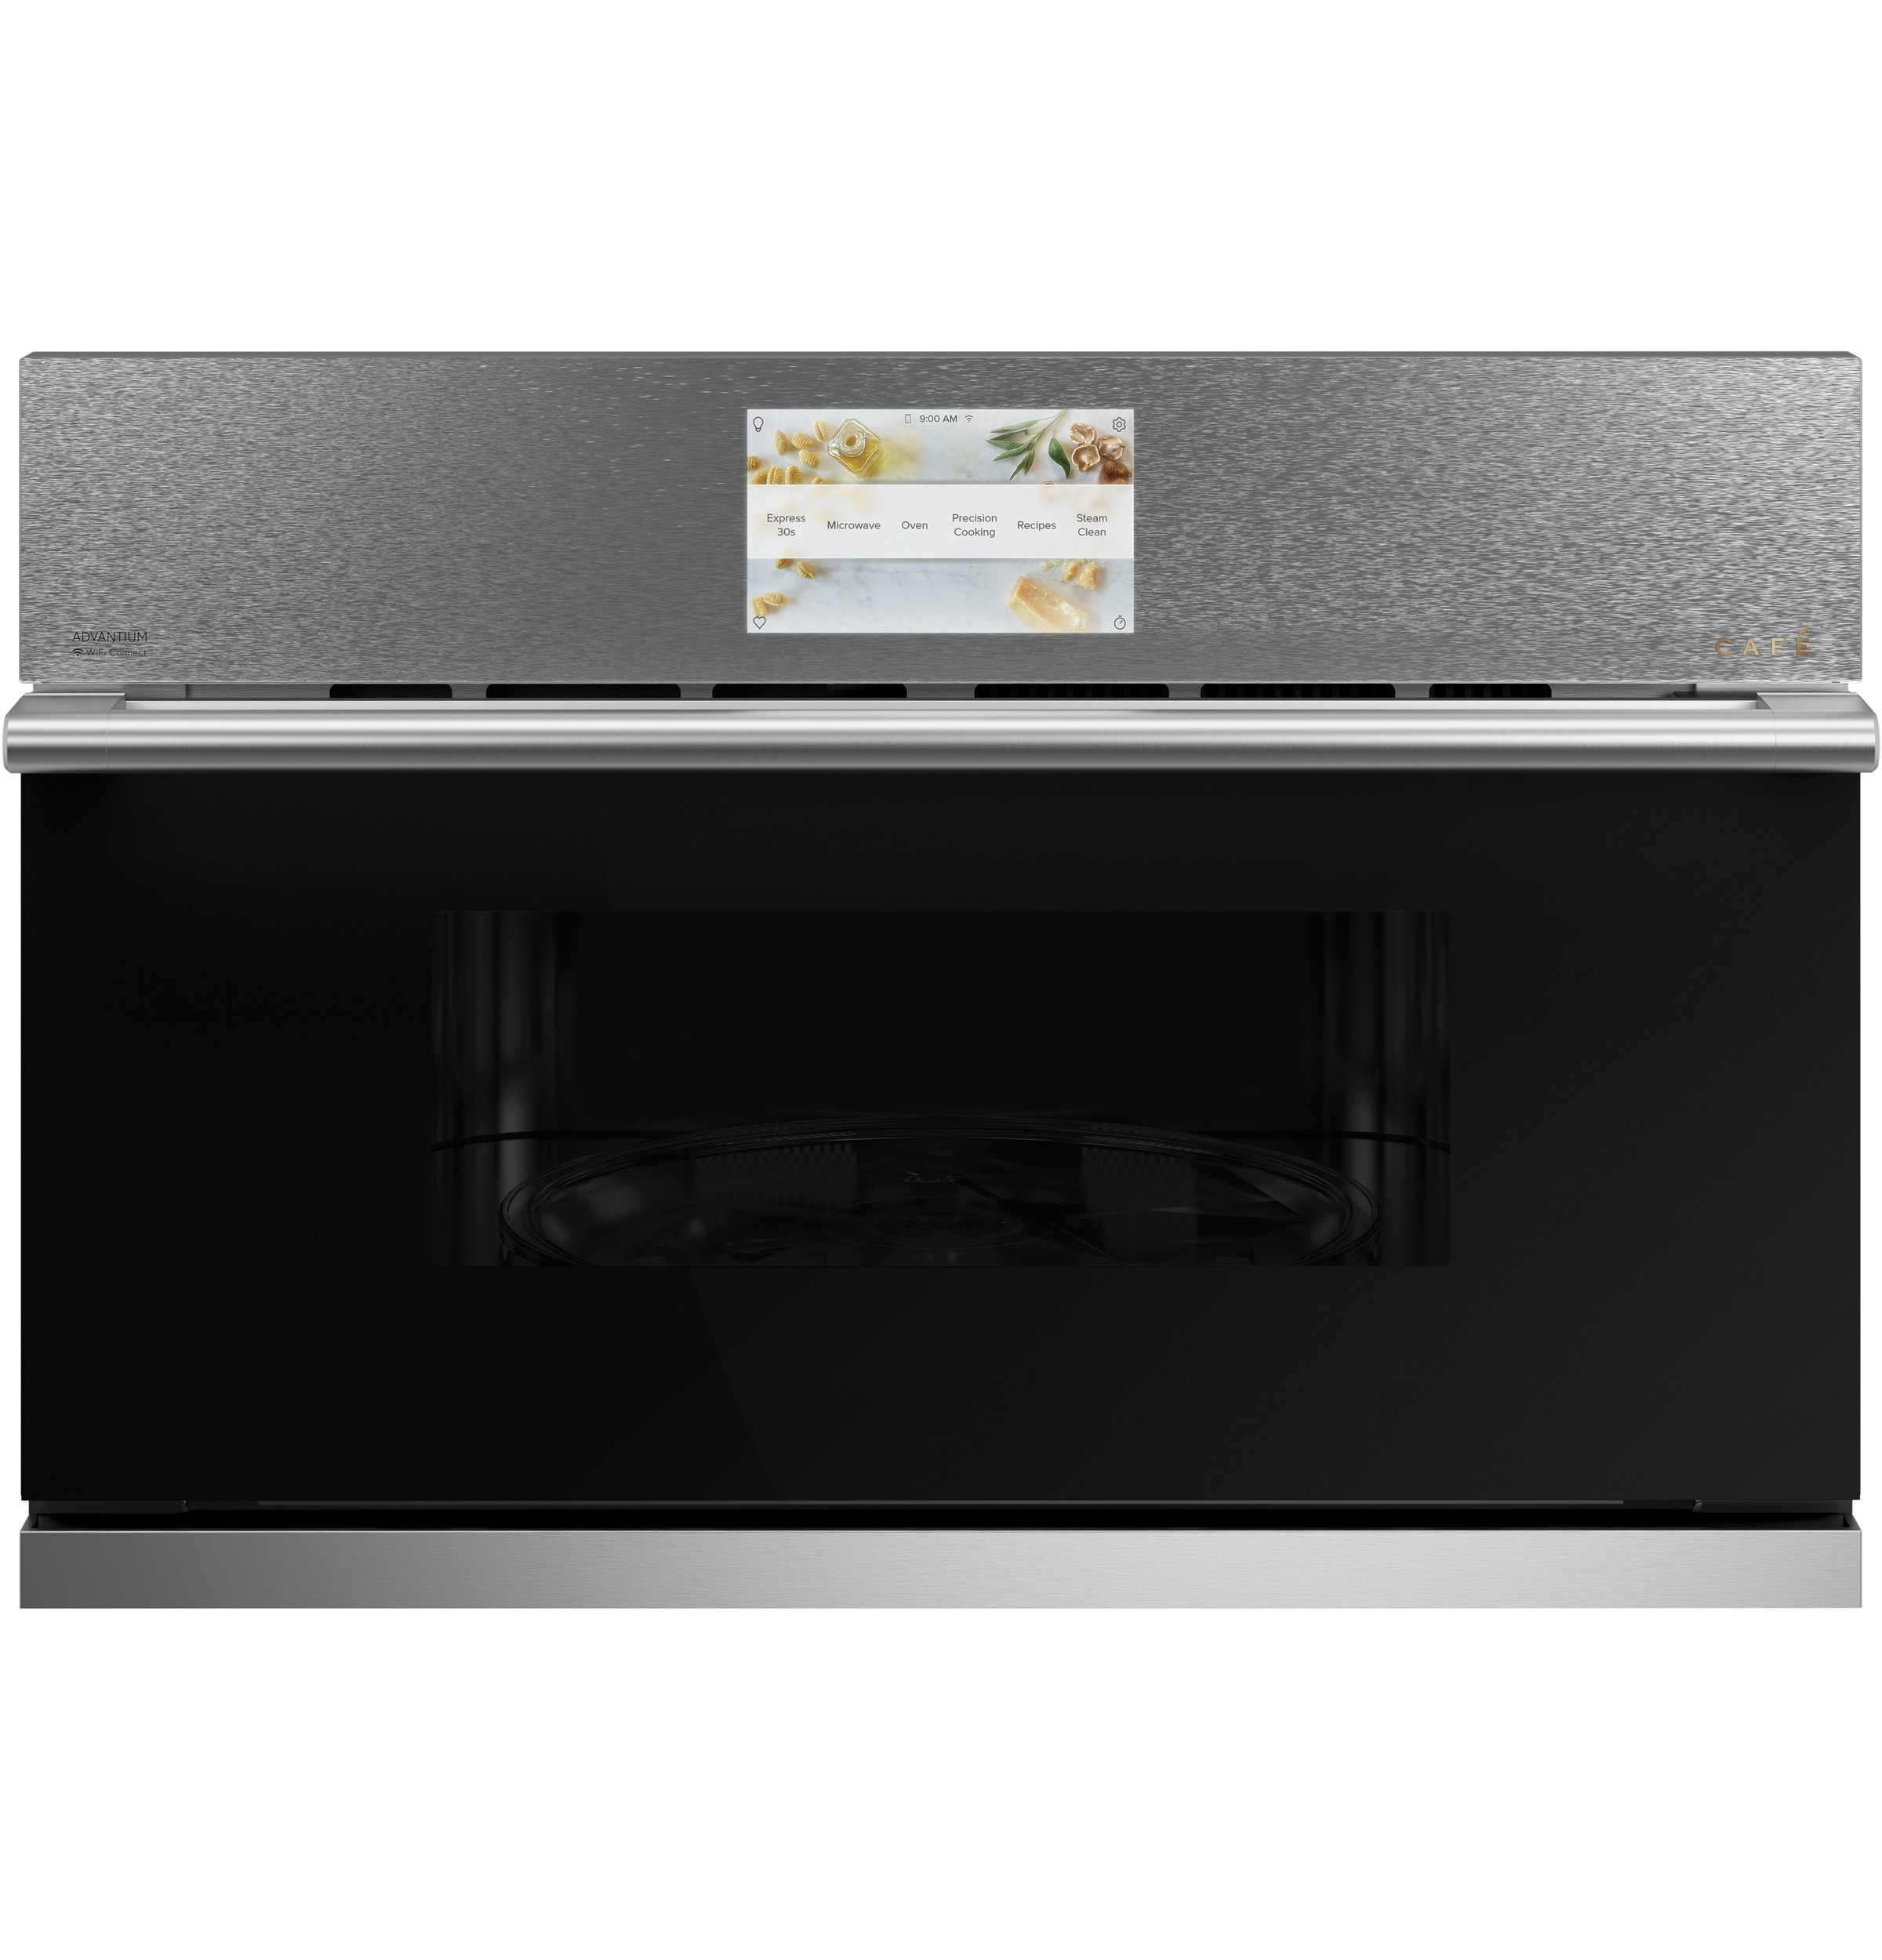 "Cafe Cafe™ 30"" Smart Five in One Wall Oven with 240V Advantium® Technology in Platinum Glass"